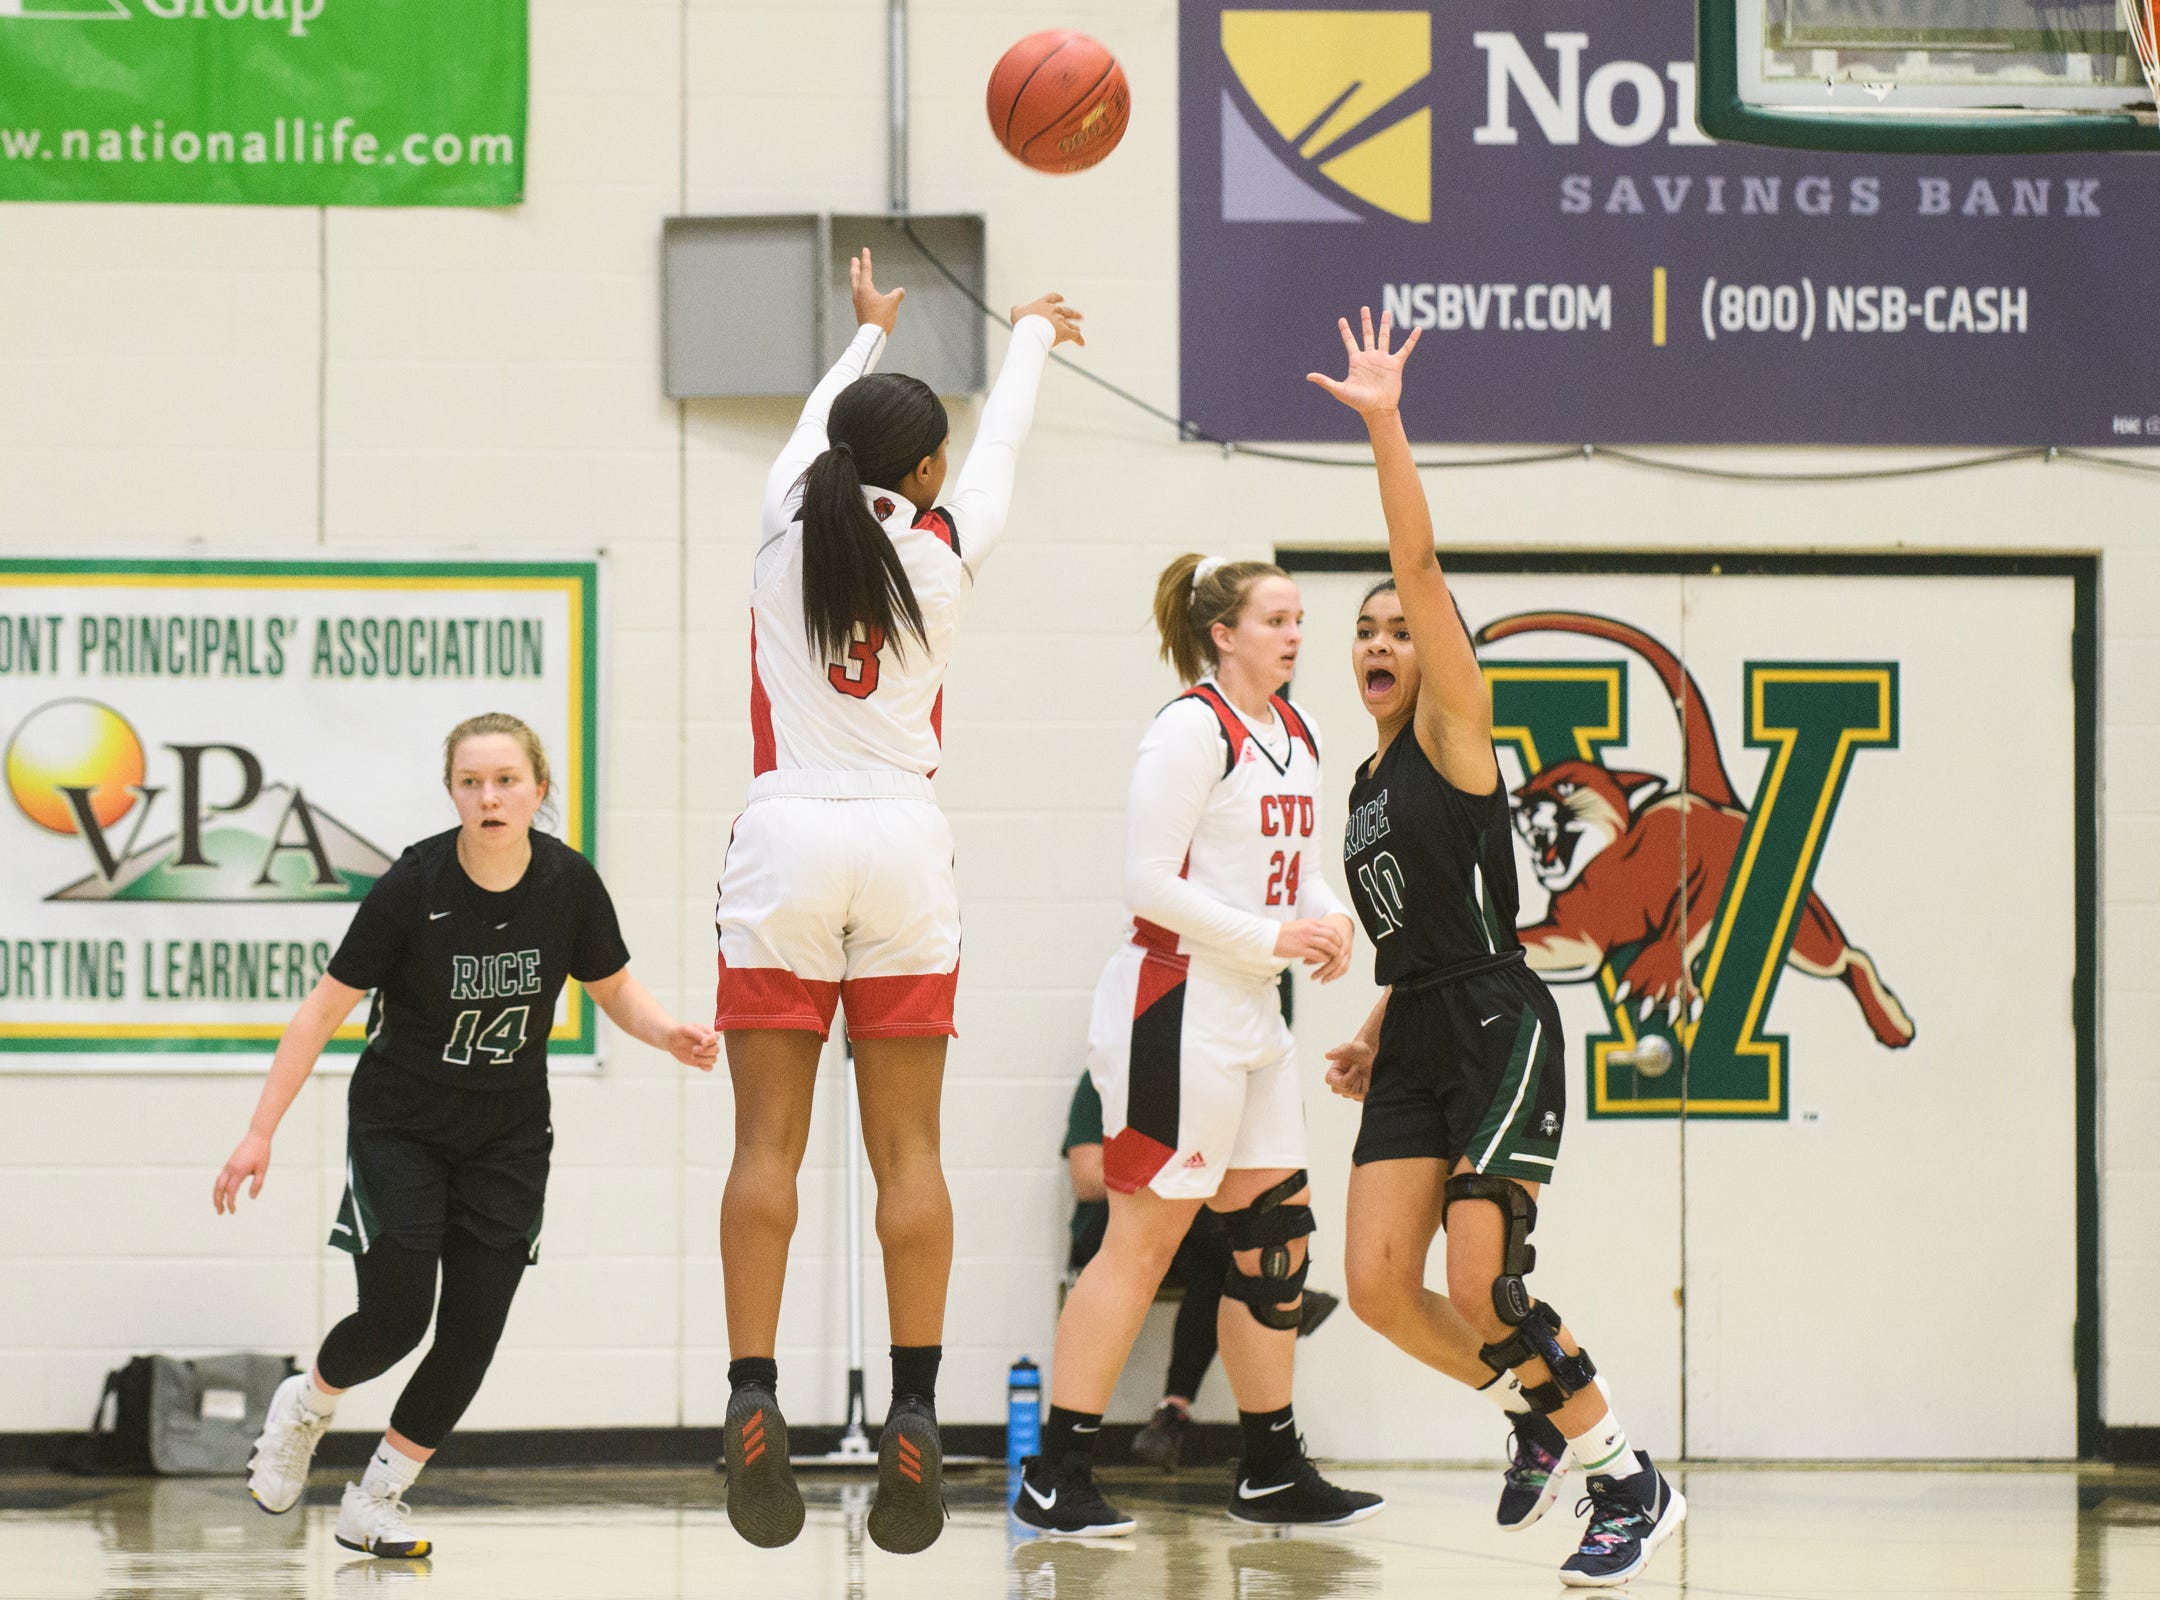 CVU's Mekkena Boyd (3) shoots the ball during the girls semifinal basketball game between the Rice Green Knights and the Champlain Valley Union Redhawks at Patrick Gym on Wednesday nigh March 6, 2019 in Burlington, Vermont.